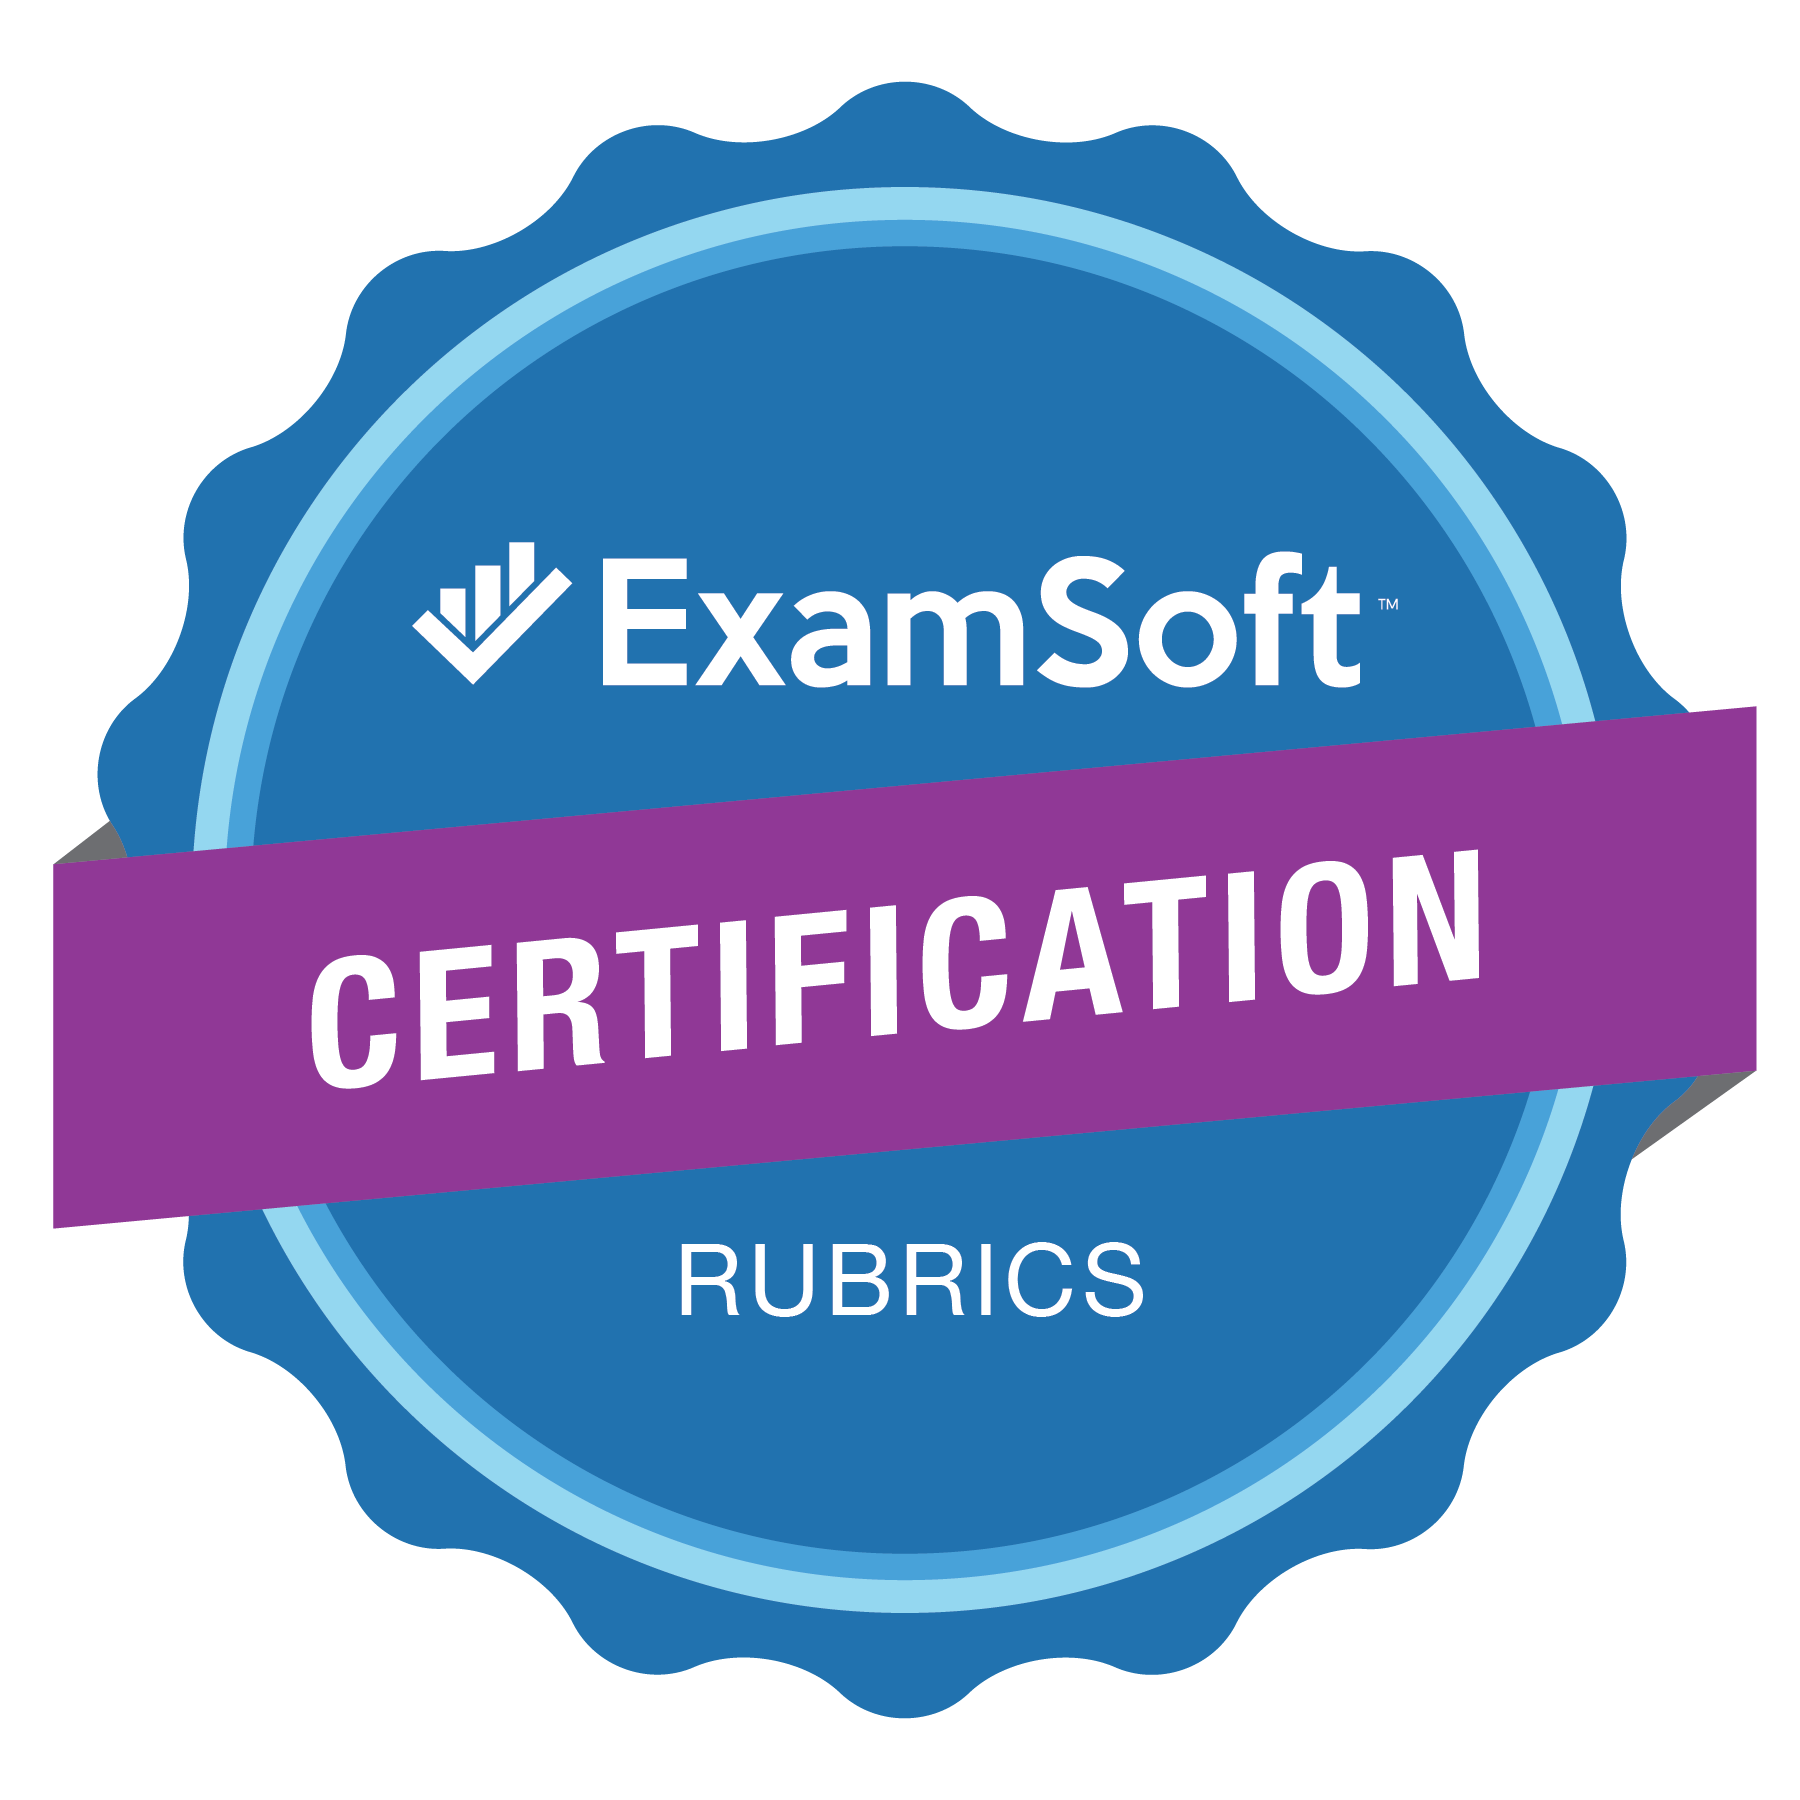 The ExamSoft Certification Rubrics Program Badge